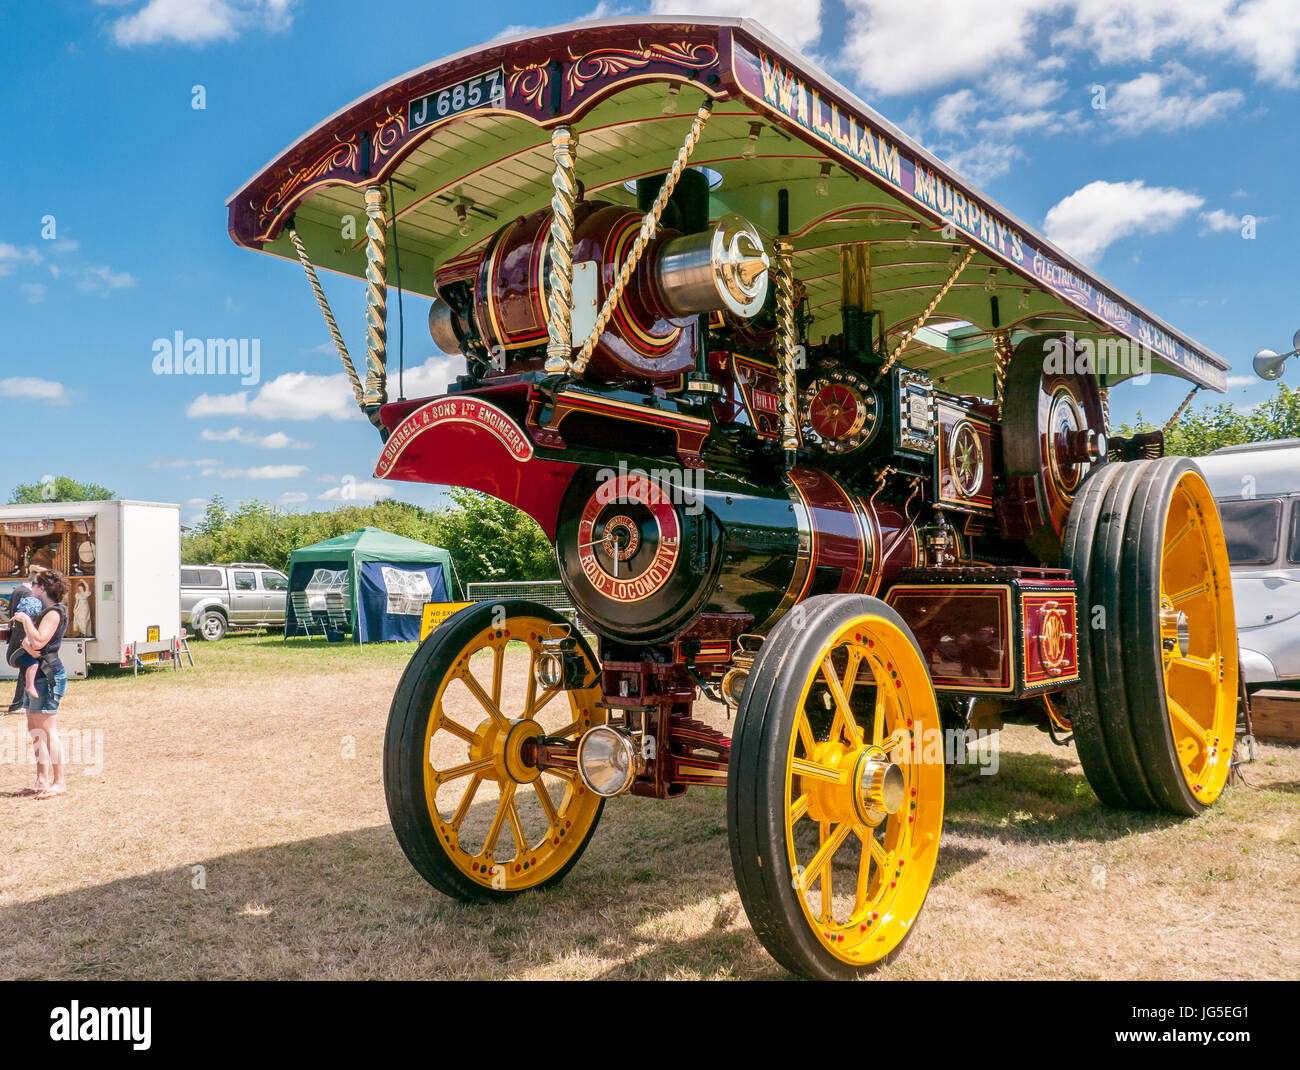 Showman`s Road Locomotive Traction Engine at a Steam rally - Stock Image